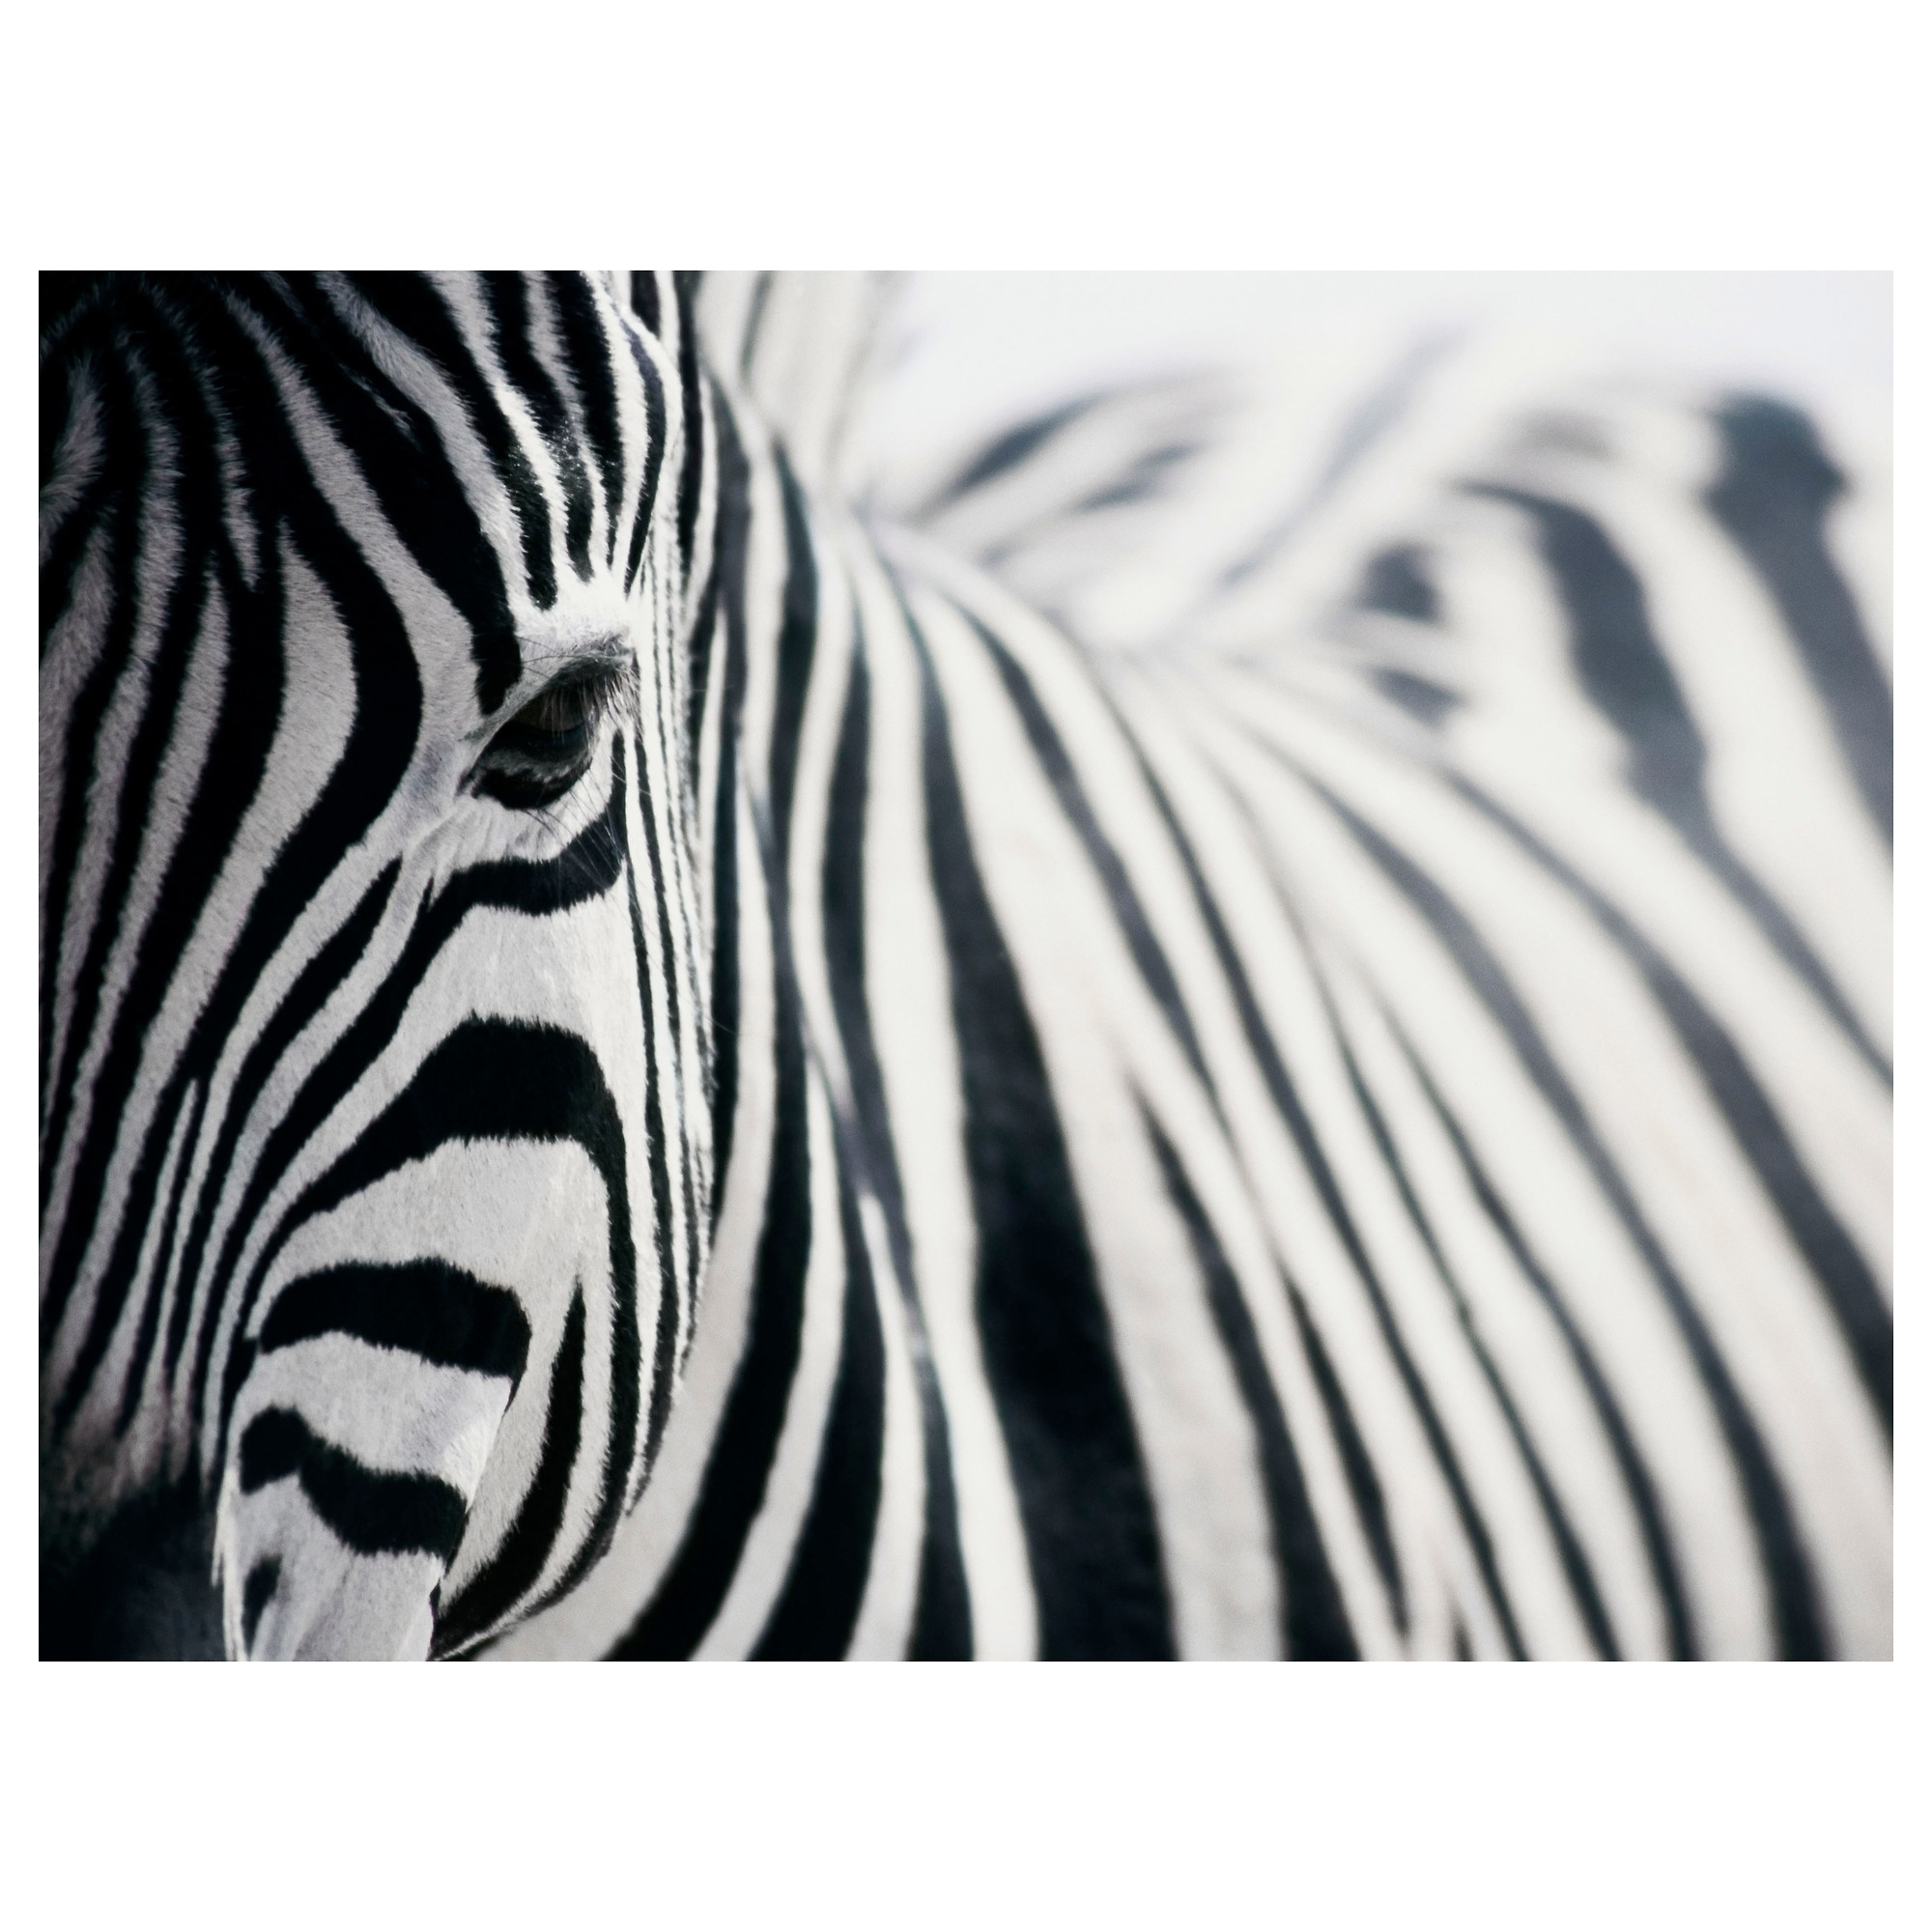 Most Up To Date Pjätteryd Picture, Zebra $49.99 $39.99 Article Number:  301.404.38. Previous Photo Zebra Wall Art Canvas